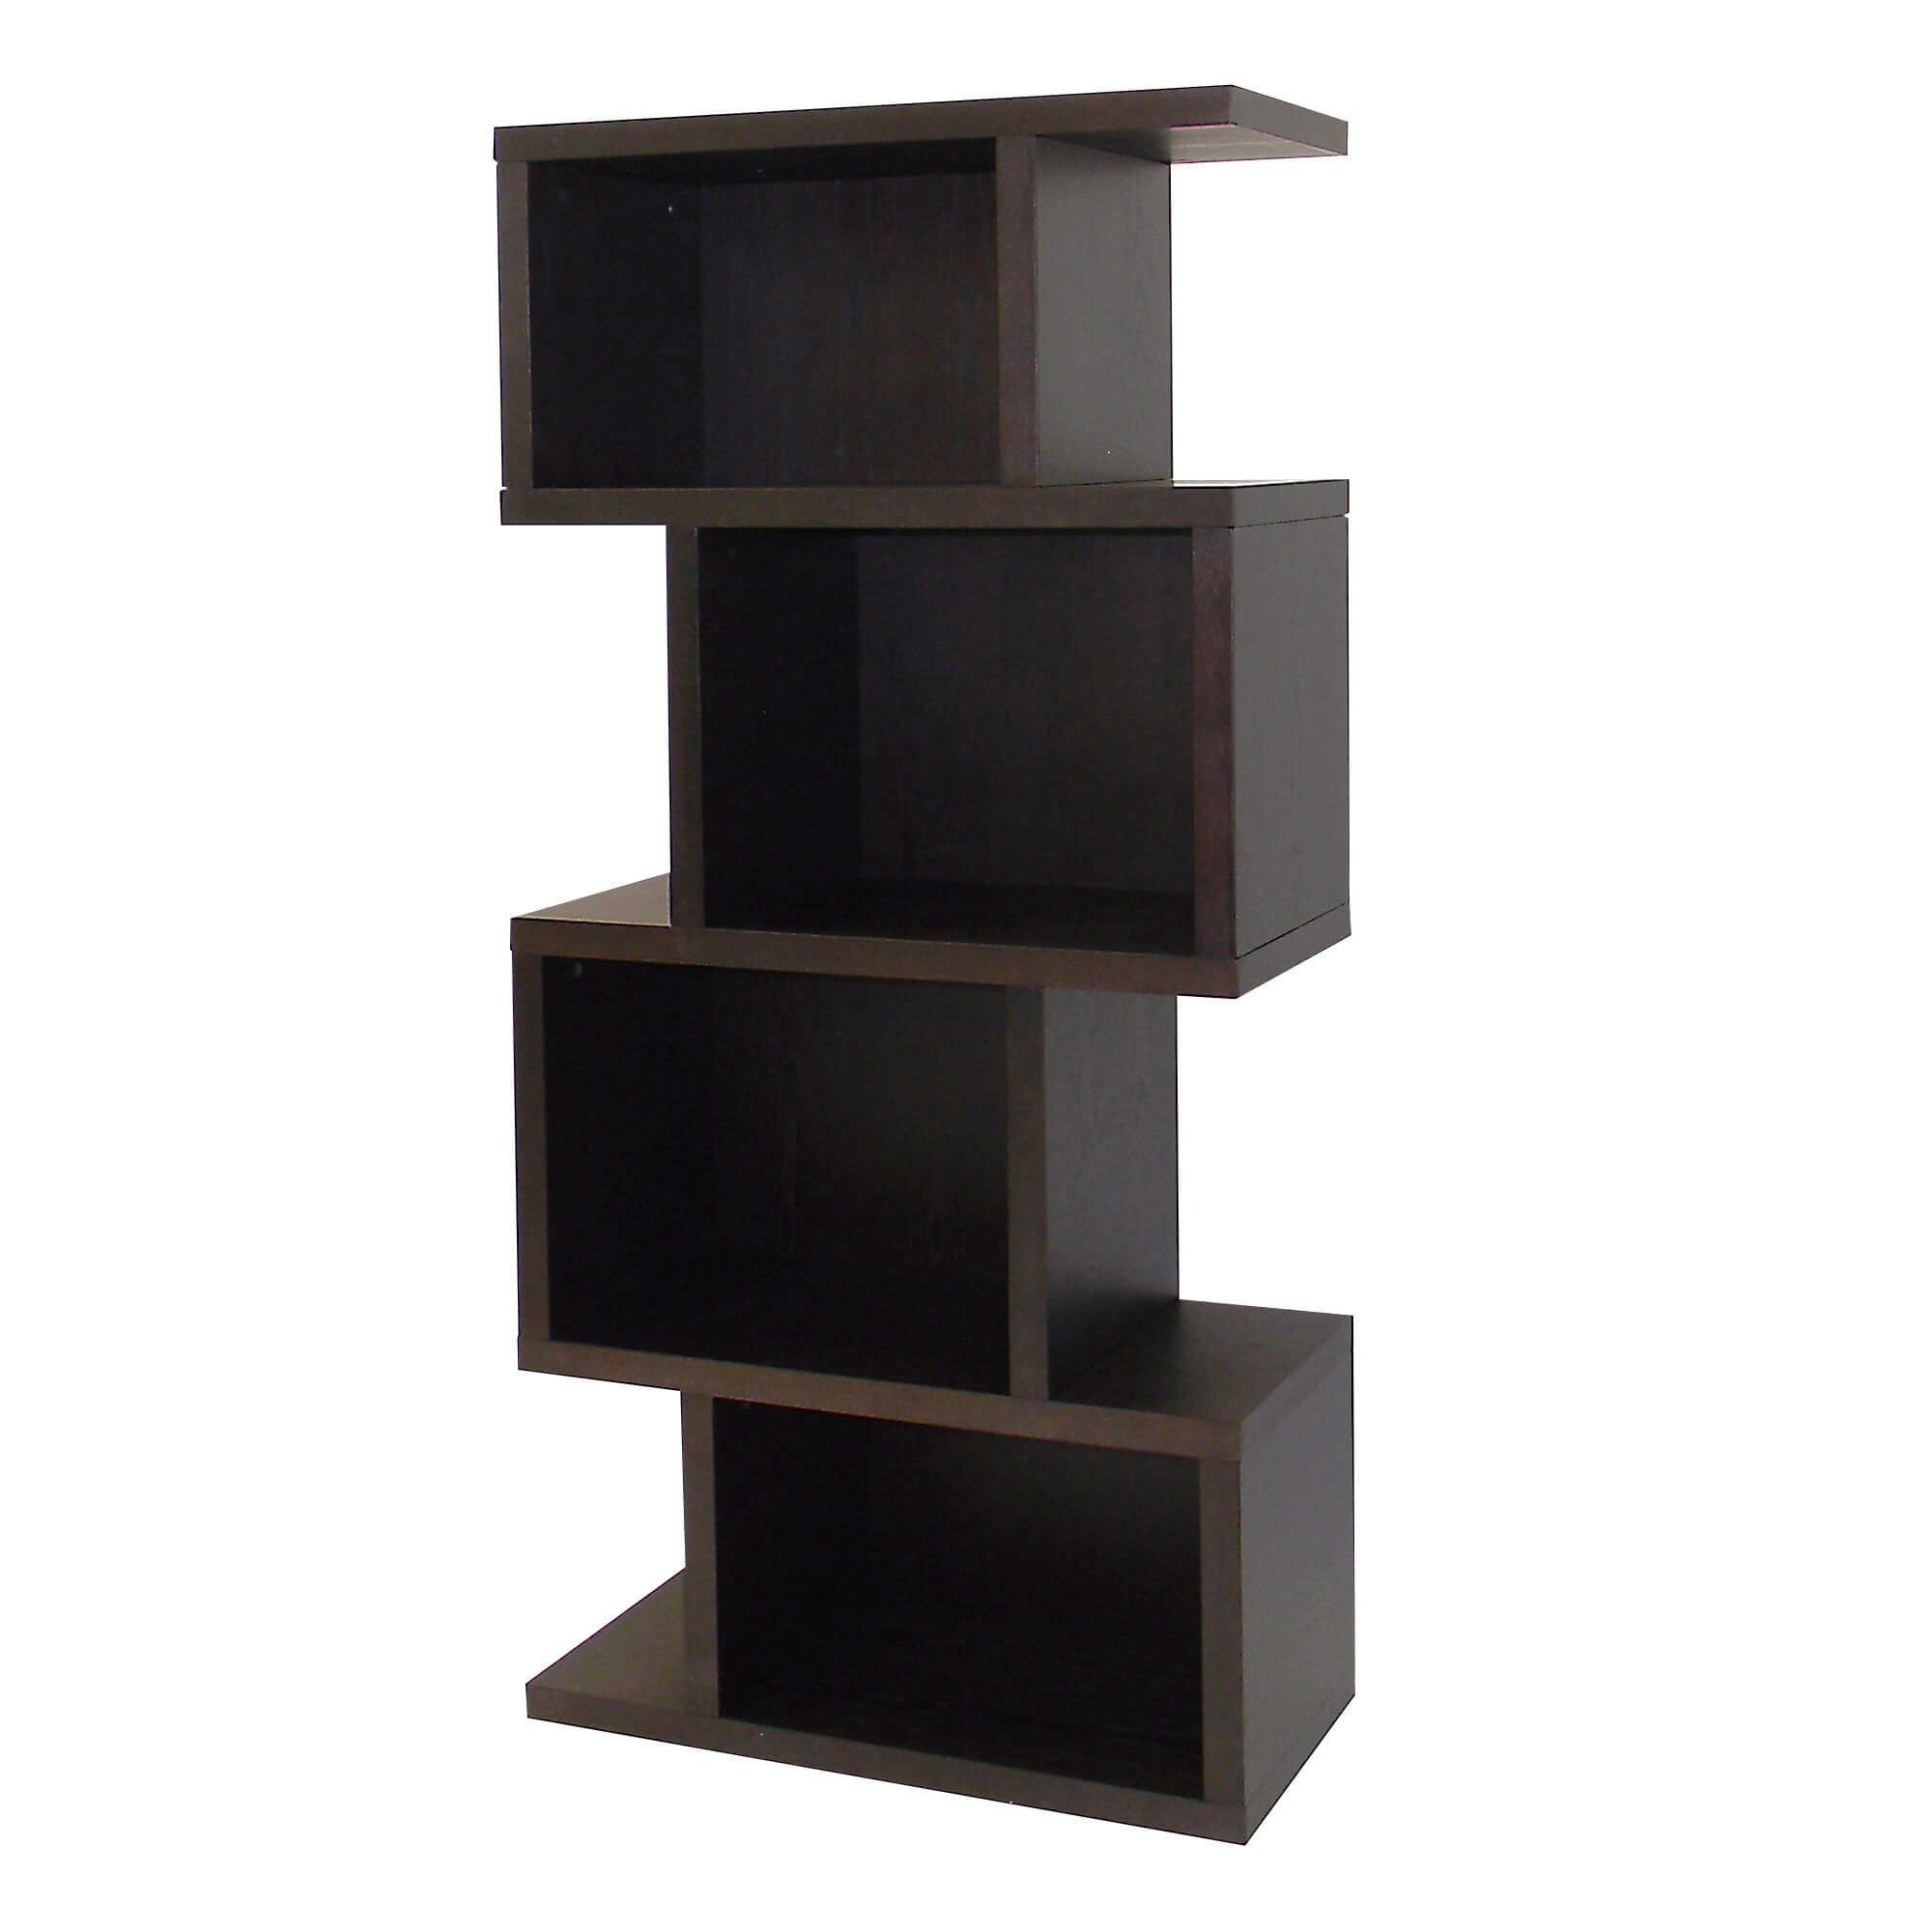 This dark birch finished 4 cube shelf is perfect for any small space that will offer additional storage as well as look great.